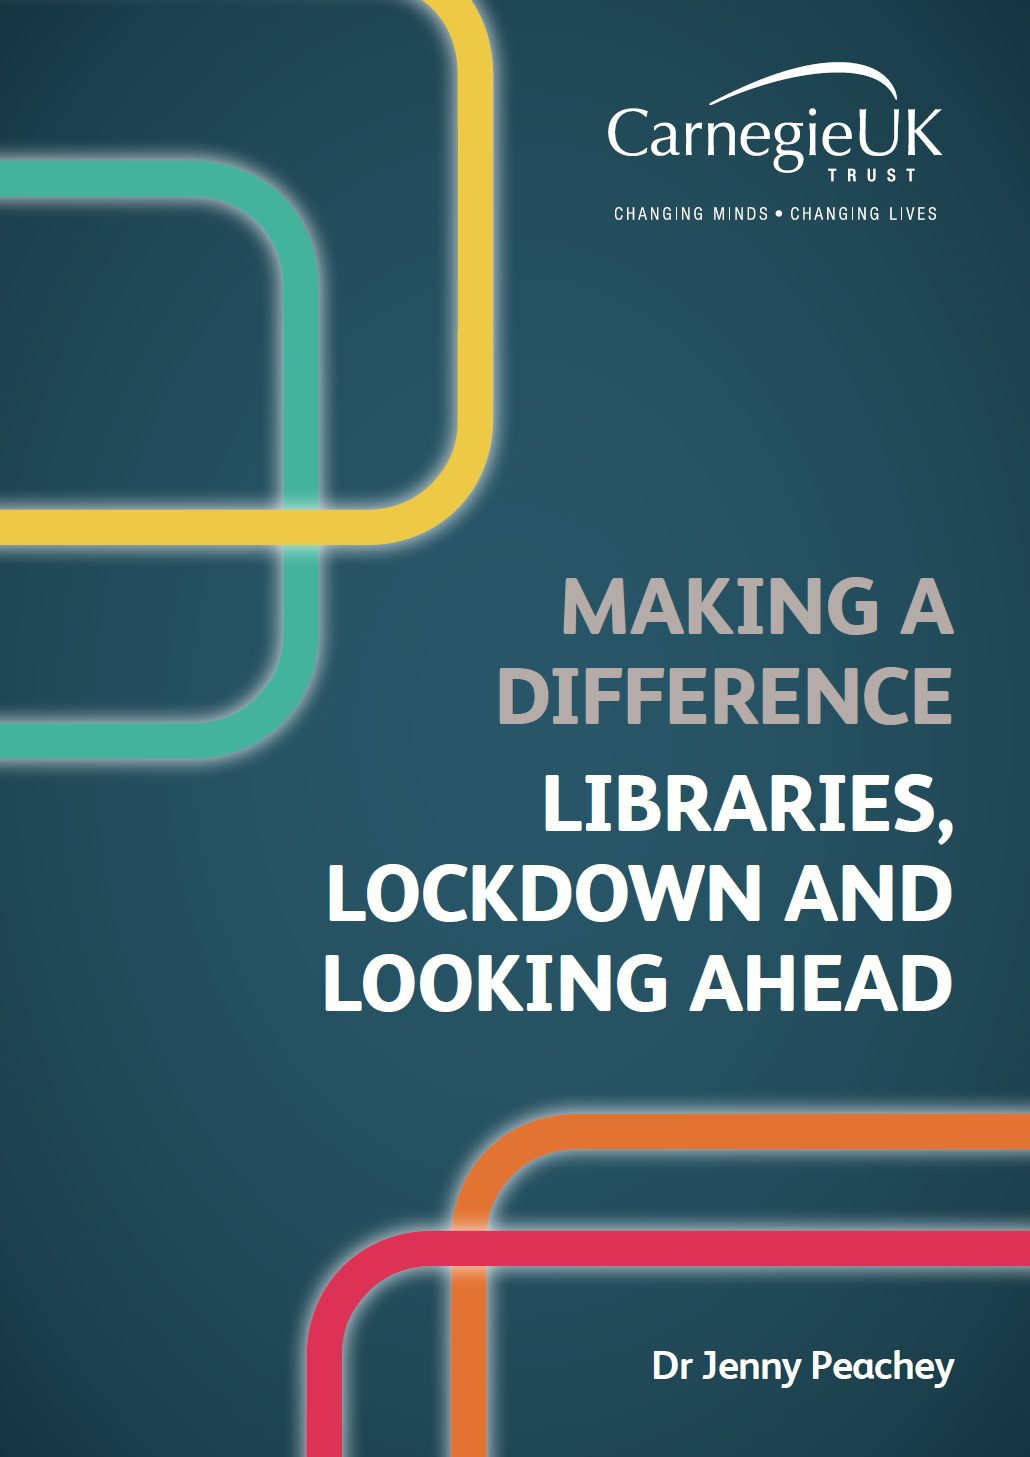 Making a Difference: Libraries, Lockdown and Looking Ahead